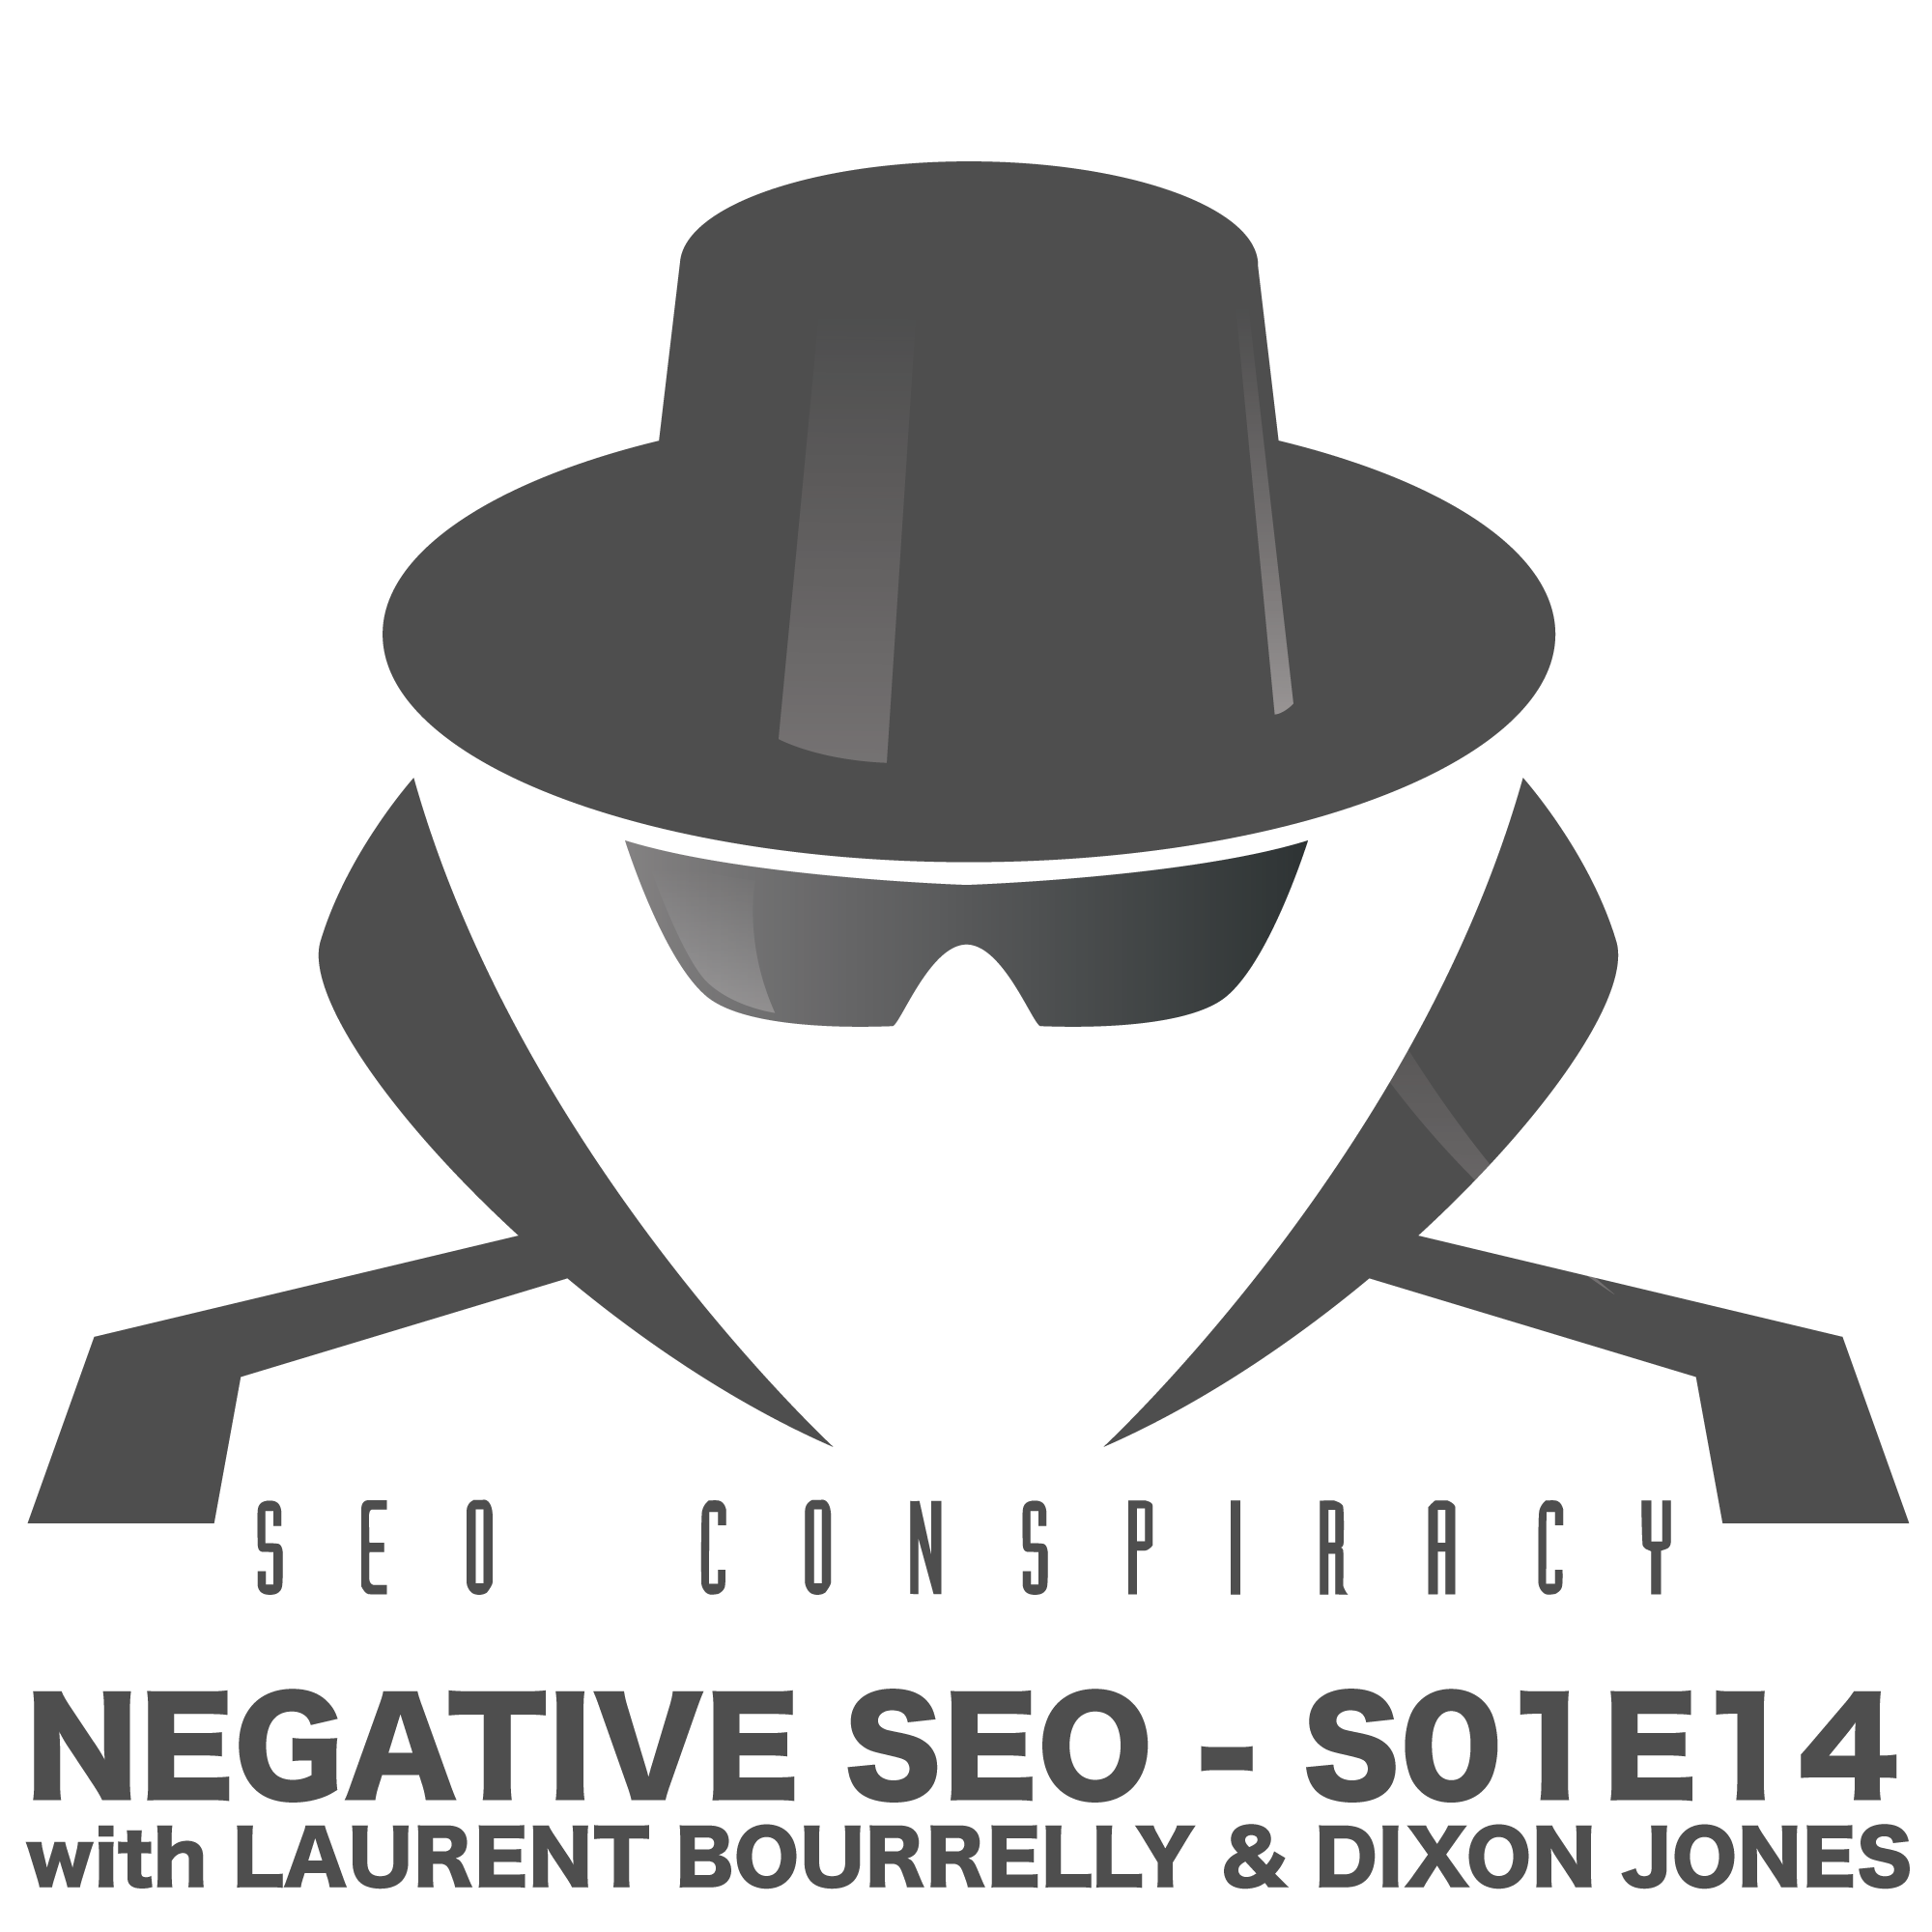 NEGATIVE SEO IN 2020 : DOES IT WORK? Can You Take Down any URL on Google? - SEO Conspiracy S01E14